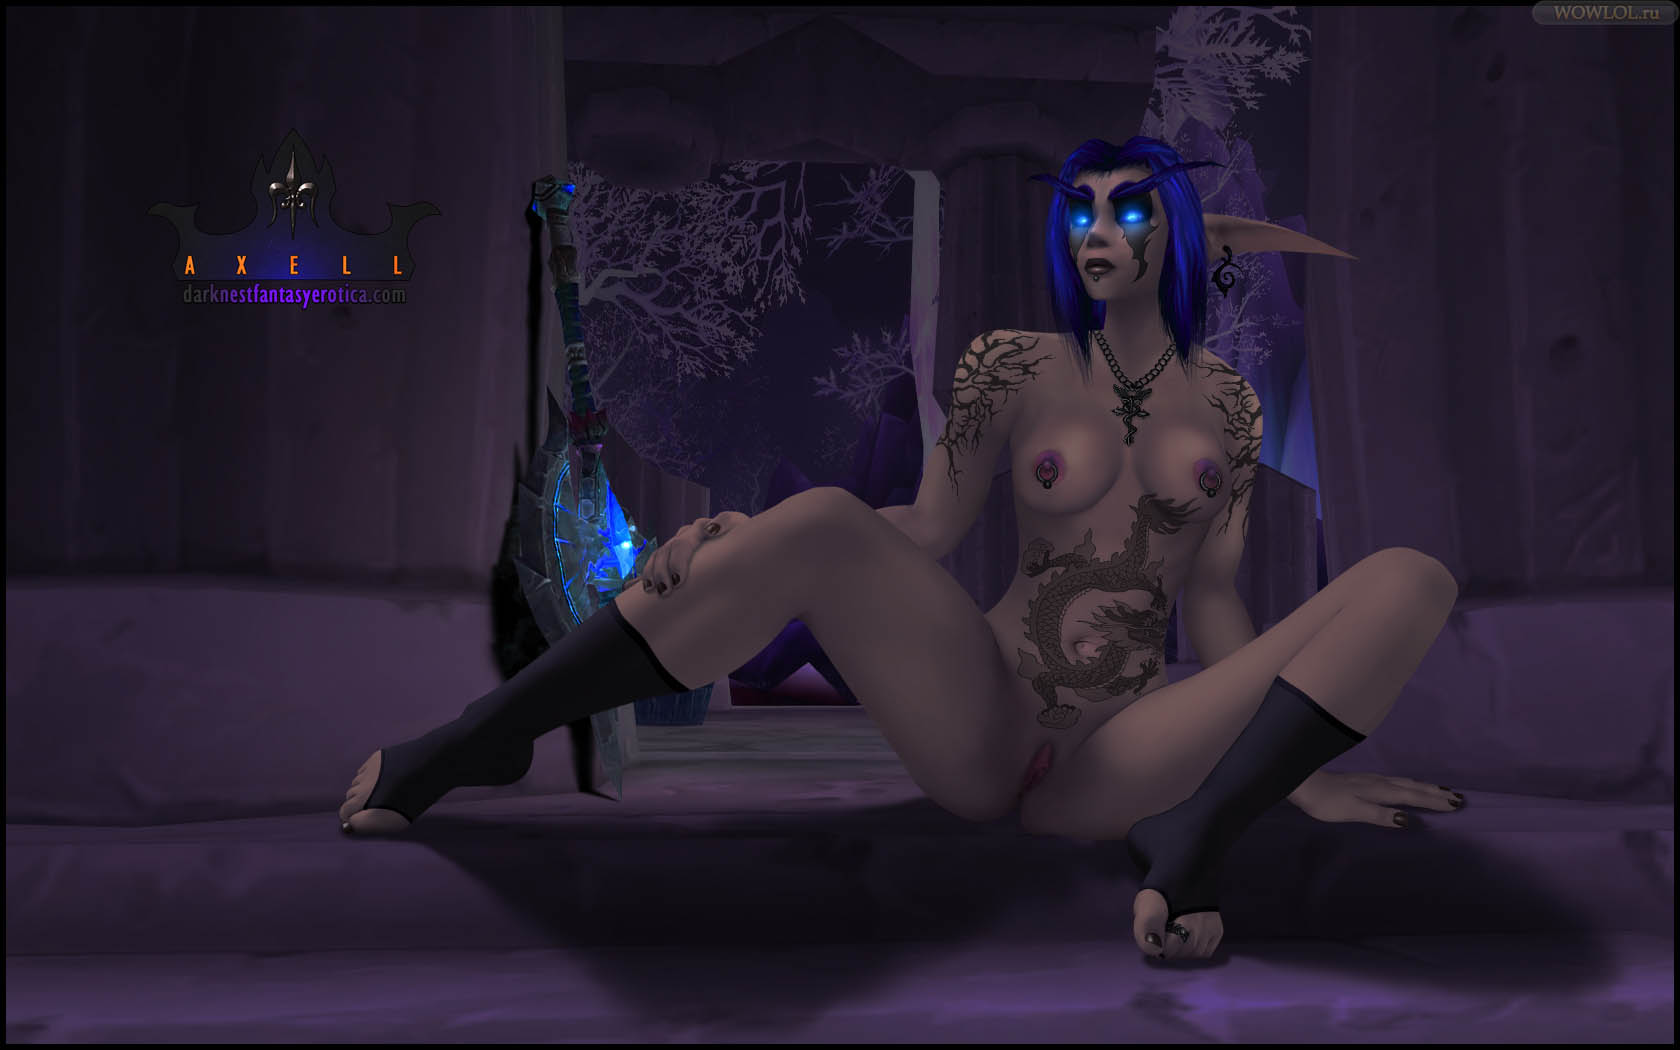 Lady jaina nude patch nsfw tube